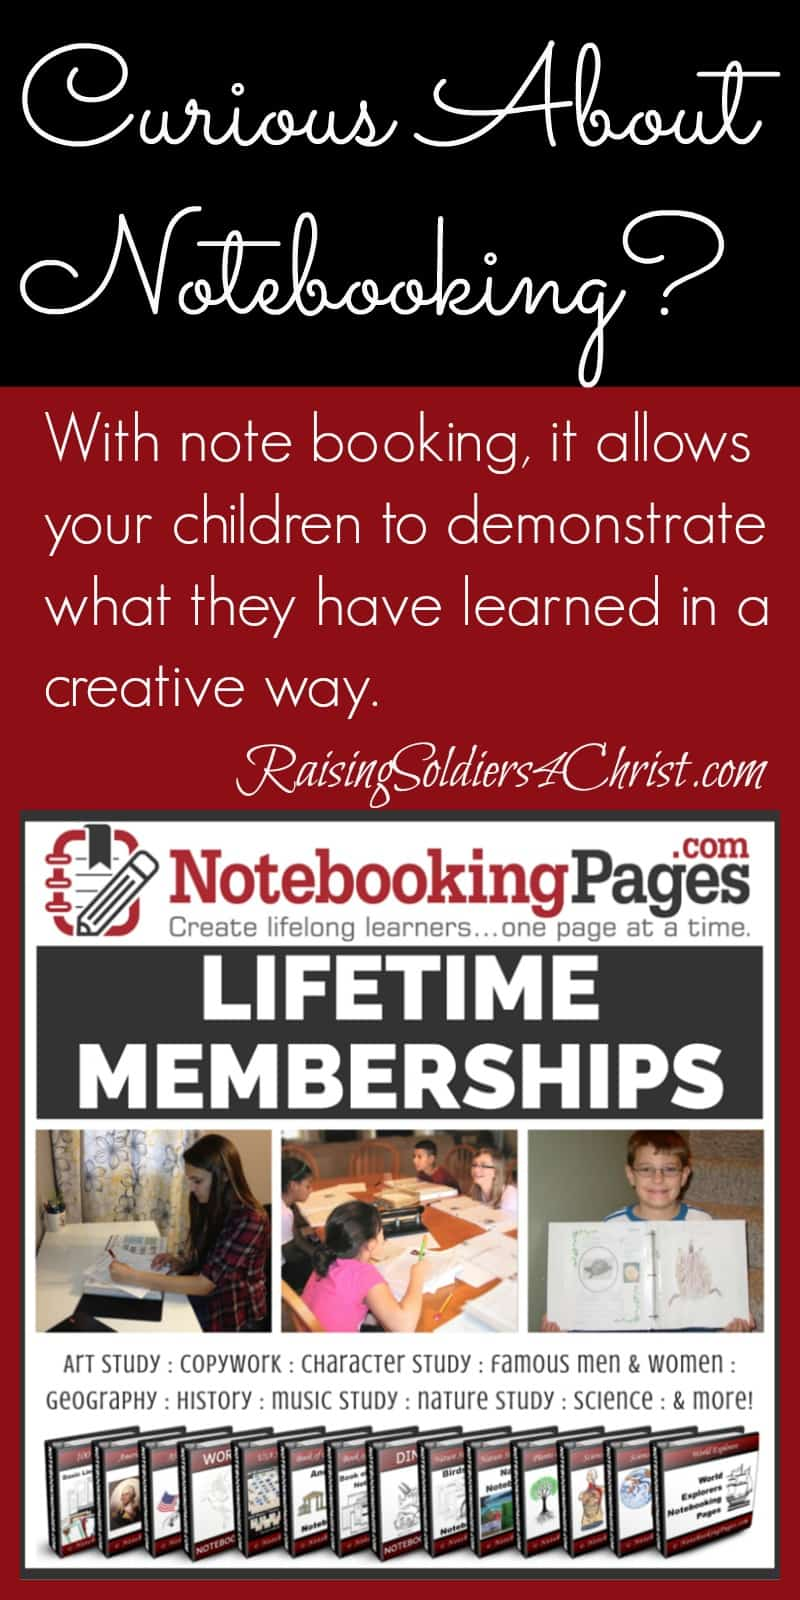 NotebookingPages.com